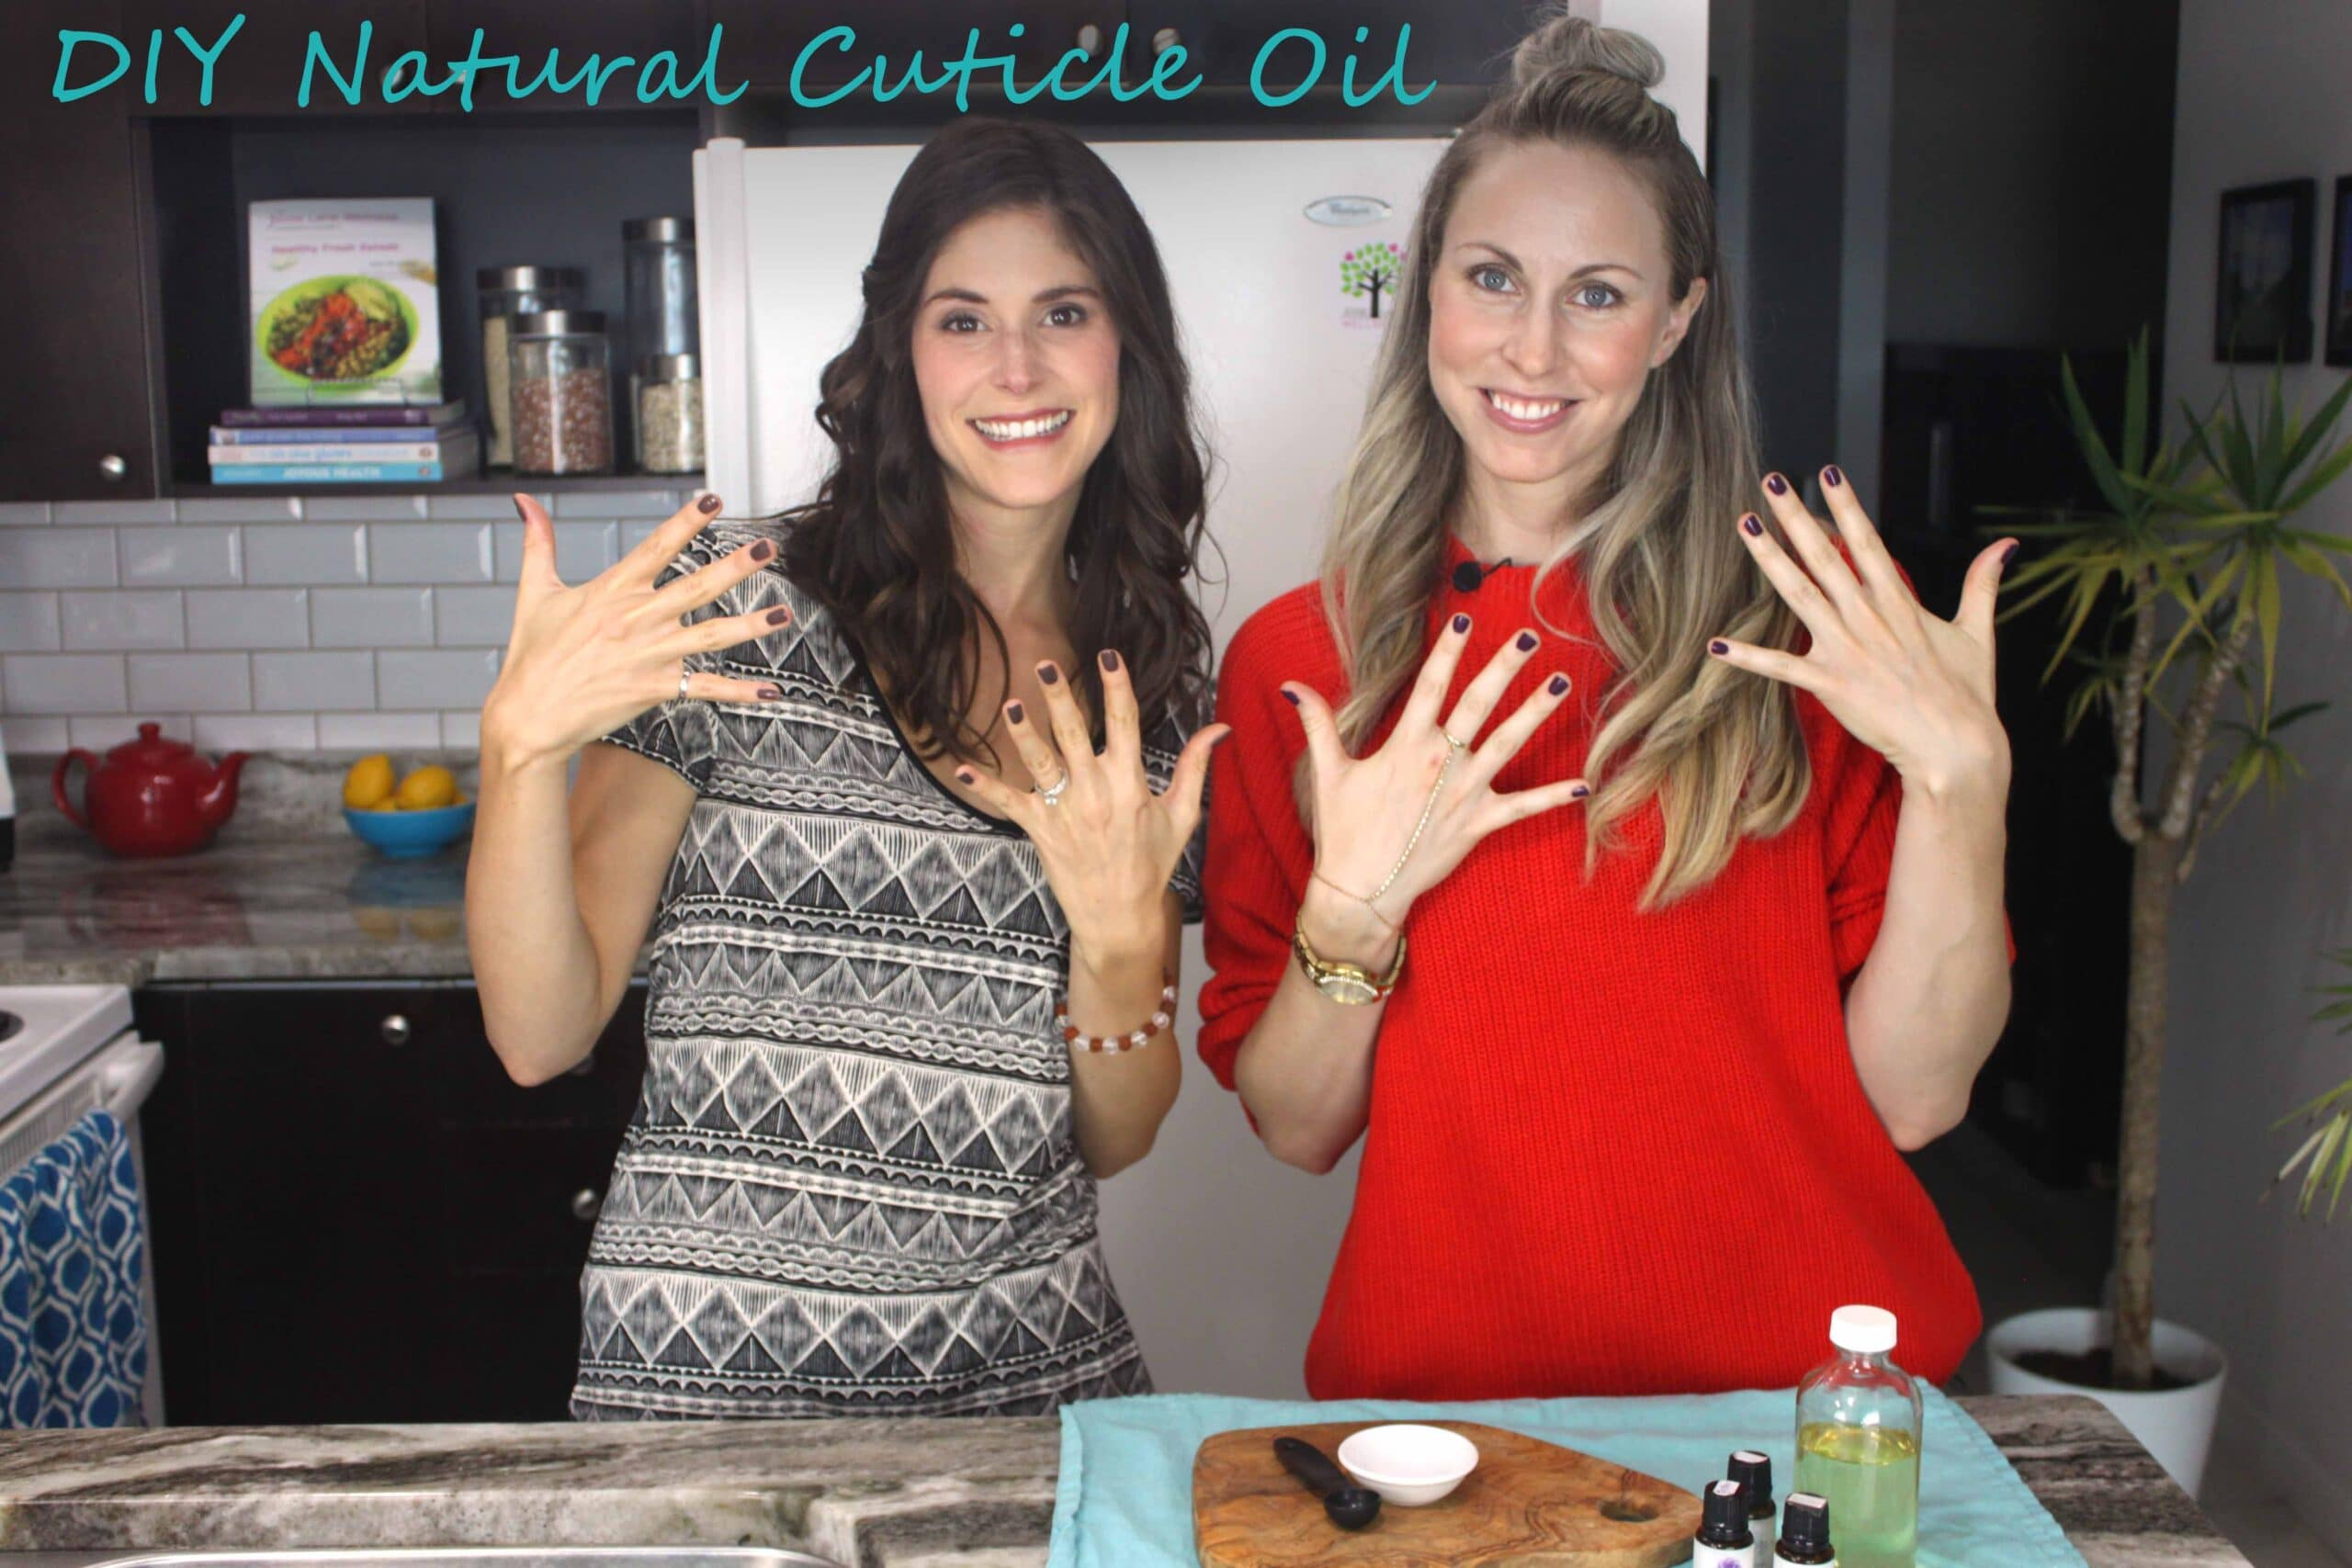 DIY Natural Cuticle Oil with @jesselwellness #diybeauty #cuticleoil